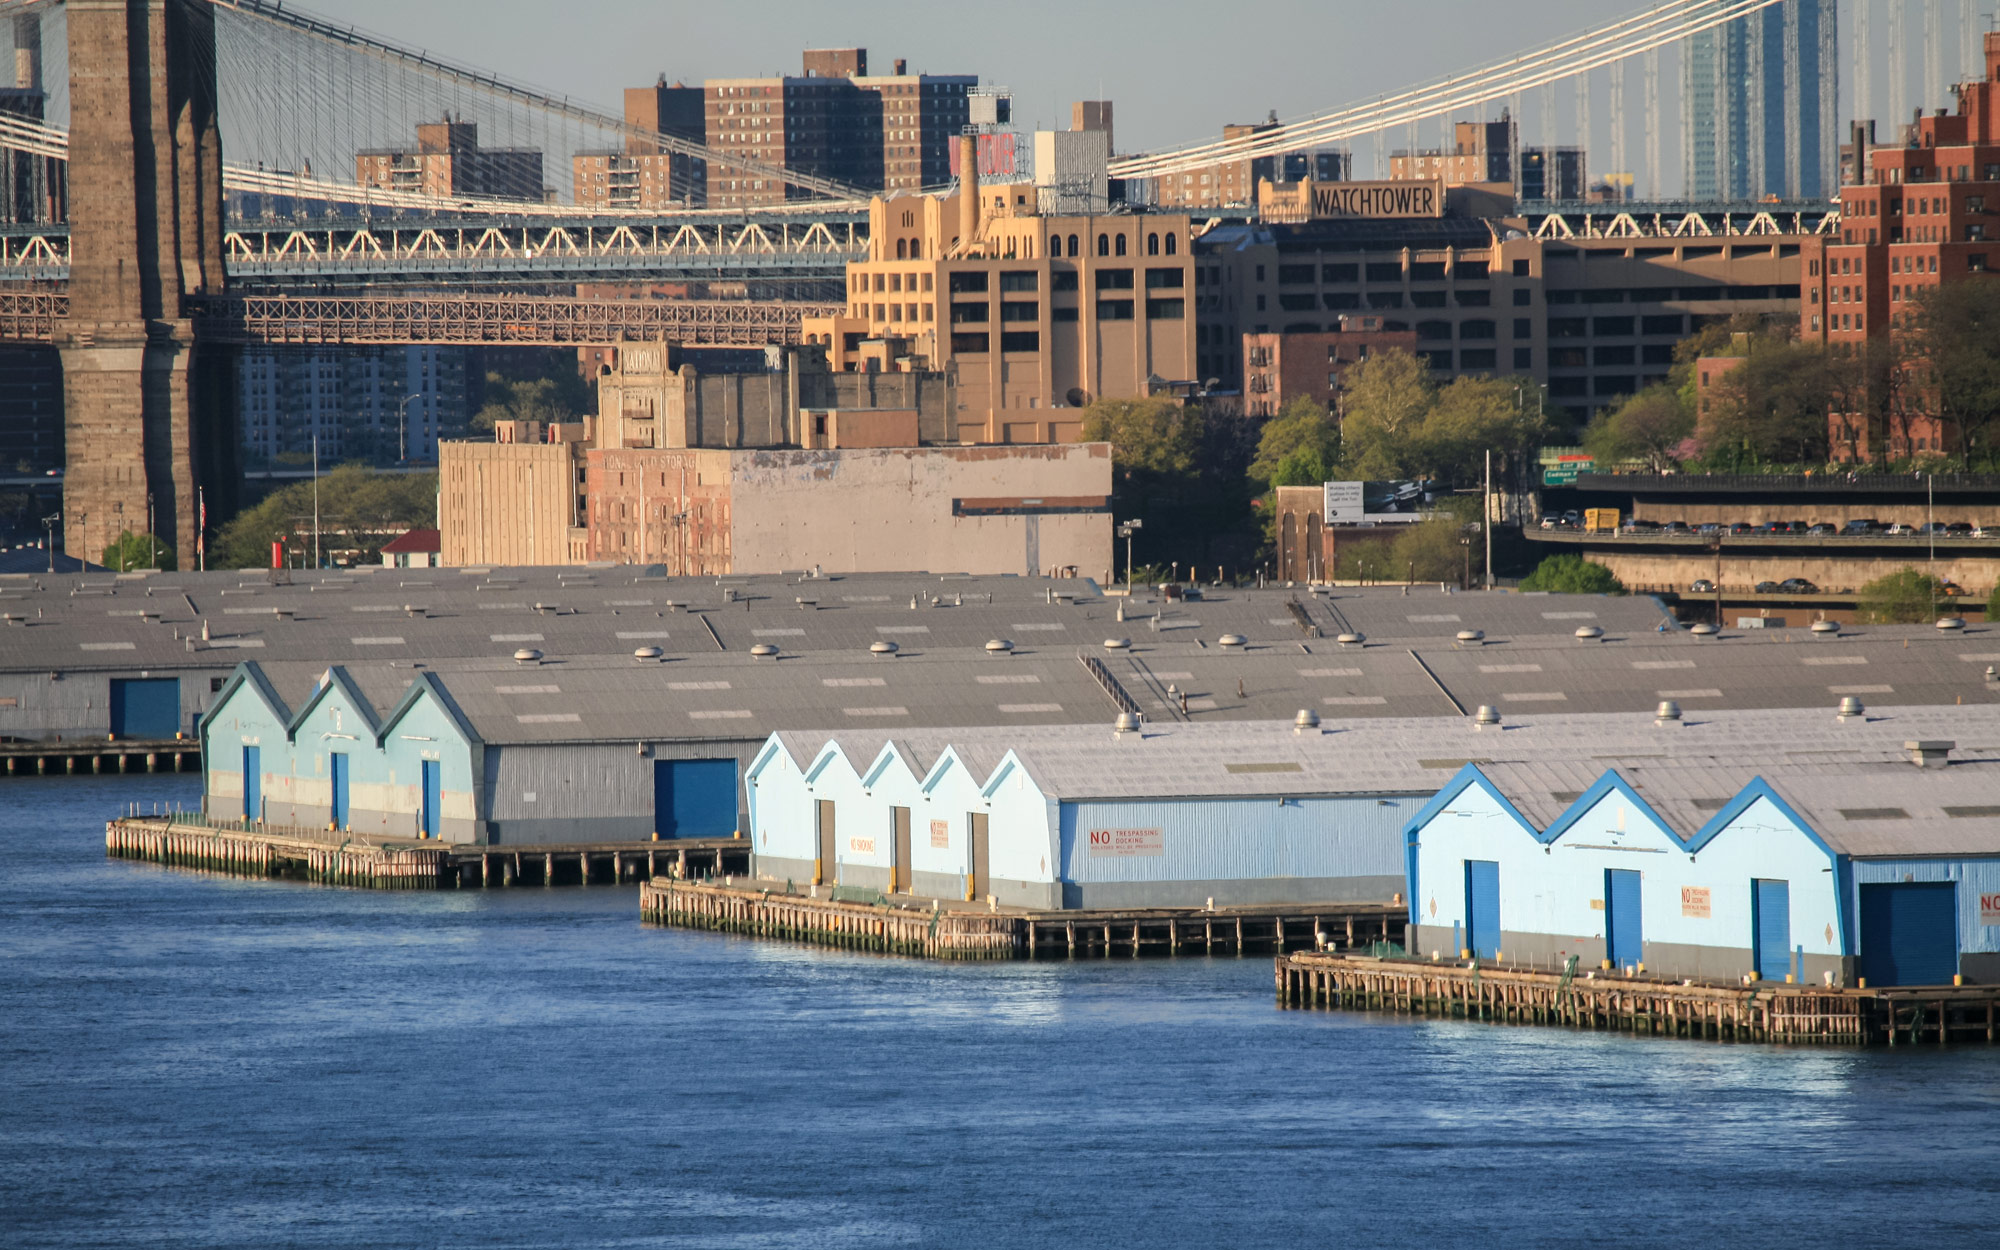 Red-Hook-Container-Terminal-494976974_4327x2885.jpg